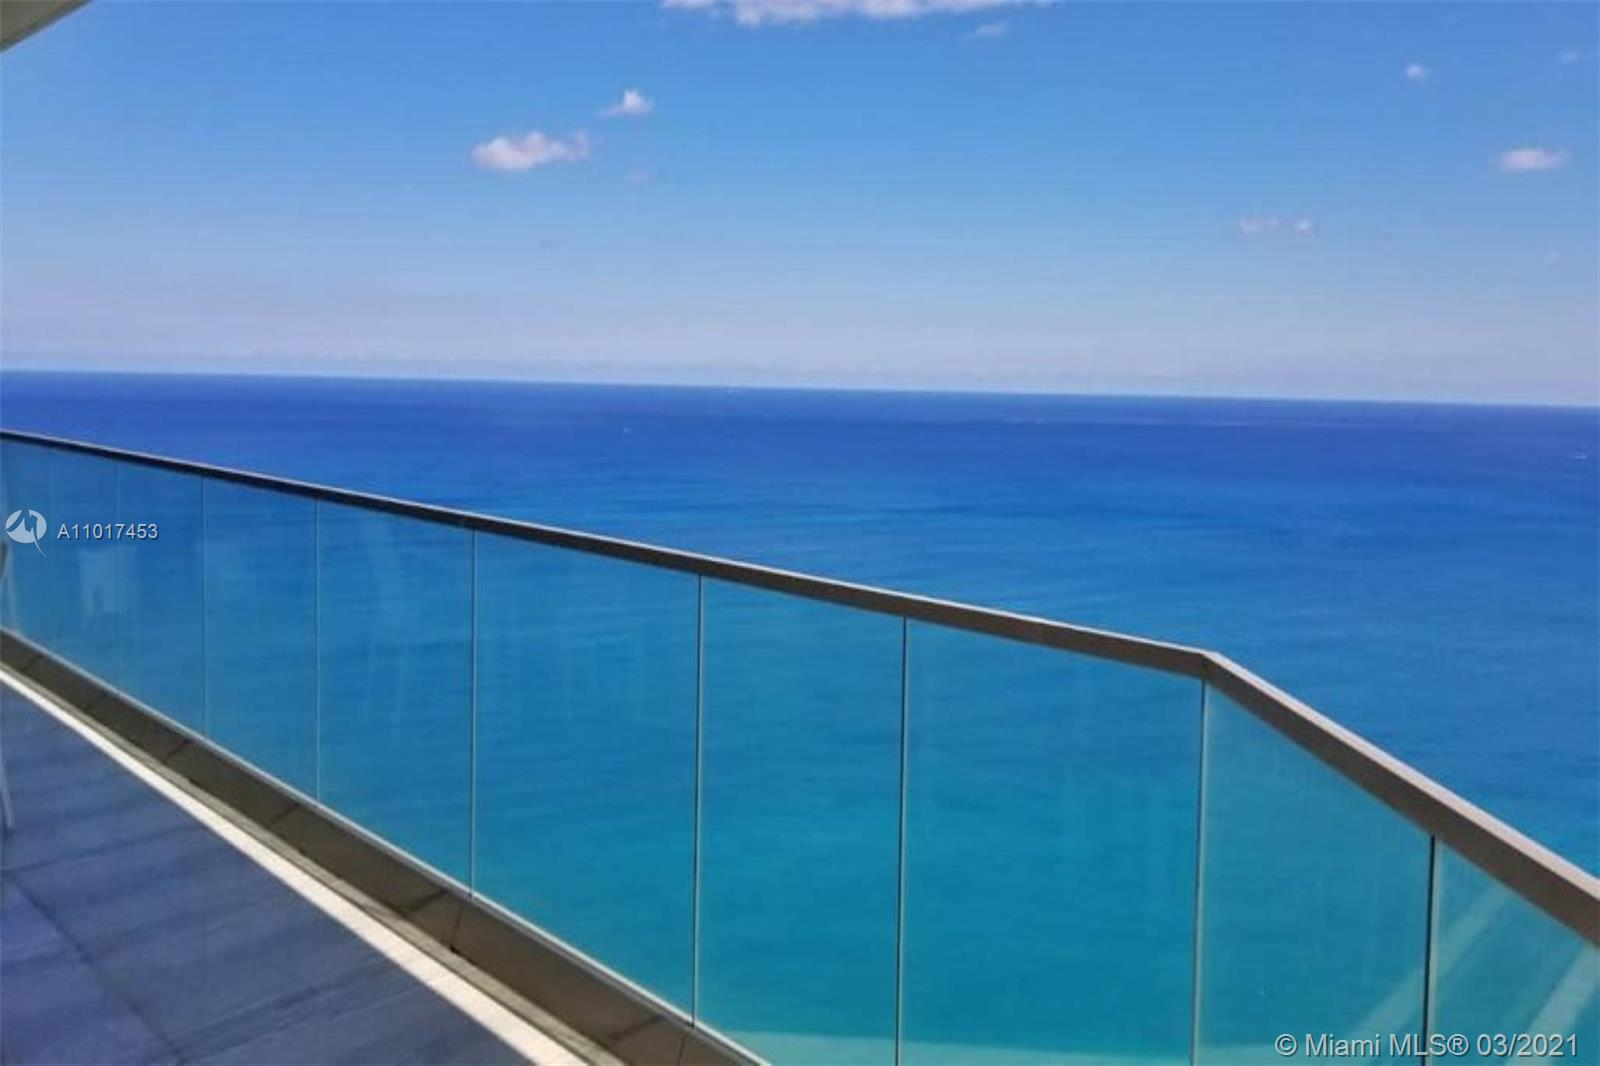 LIVE #LUXURIOUS #ARMANICASA STYLE IN FAMOUSE #SUNNYISLESBEACH, #OCEANFRONT CORNER UNIT 180% OCEAN / BAY VIEWS, #DESIGNER #TURNKEY FURNISHED, #BRINGYOURTOOTHBRUSH.  ENJOY AMAZING #SUNRISES, #SUNSETS & #MOONOVERTHEOCEAN ON YOUR #OVERSIZED BALOCNIES, FLOOR TO HIGH CEILING ALL IMPACT WINDOWS, HUGE 2 BR + DEN / 2.5 BATHS, #SMARTHOME, CONTROL EVERYTHING FROM YOUR PHONE… #5STAR #AMENITIES, INCLUDE LUXURY BEACH, GRAND LOBBY, #LOUNGE, OCEANFRONT POOL SALON, #SPA /SAUNA, CONCIERGE, #CIGAR / #WINE ROOM, #FREE VALET PARKING. #A+ SCHOOLS, #WALK TO #ENTERTAINEMT / #RESTAURANTS, WORSHIP. MINS TO #CASINO, #AVENTURAMALL, #SOUTHBEACH.